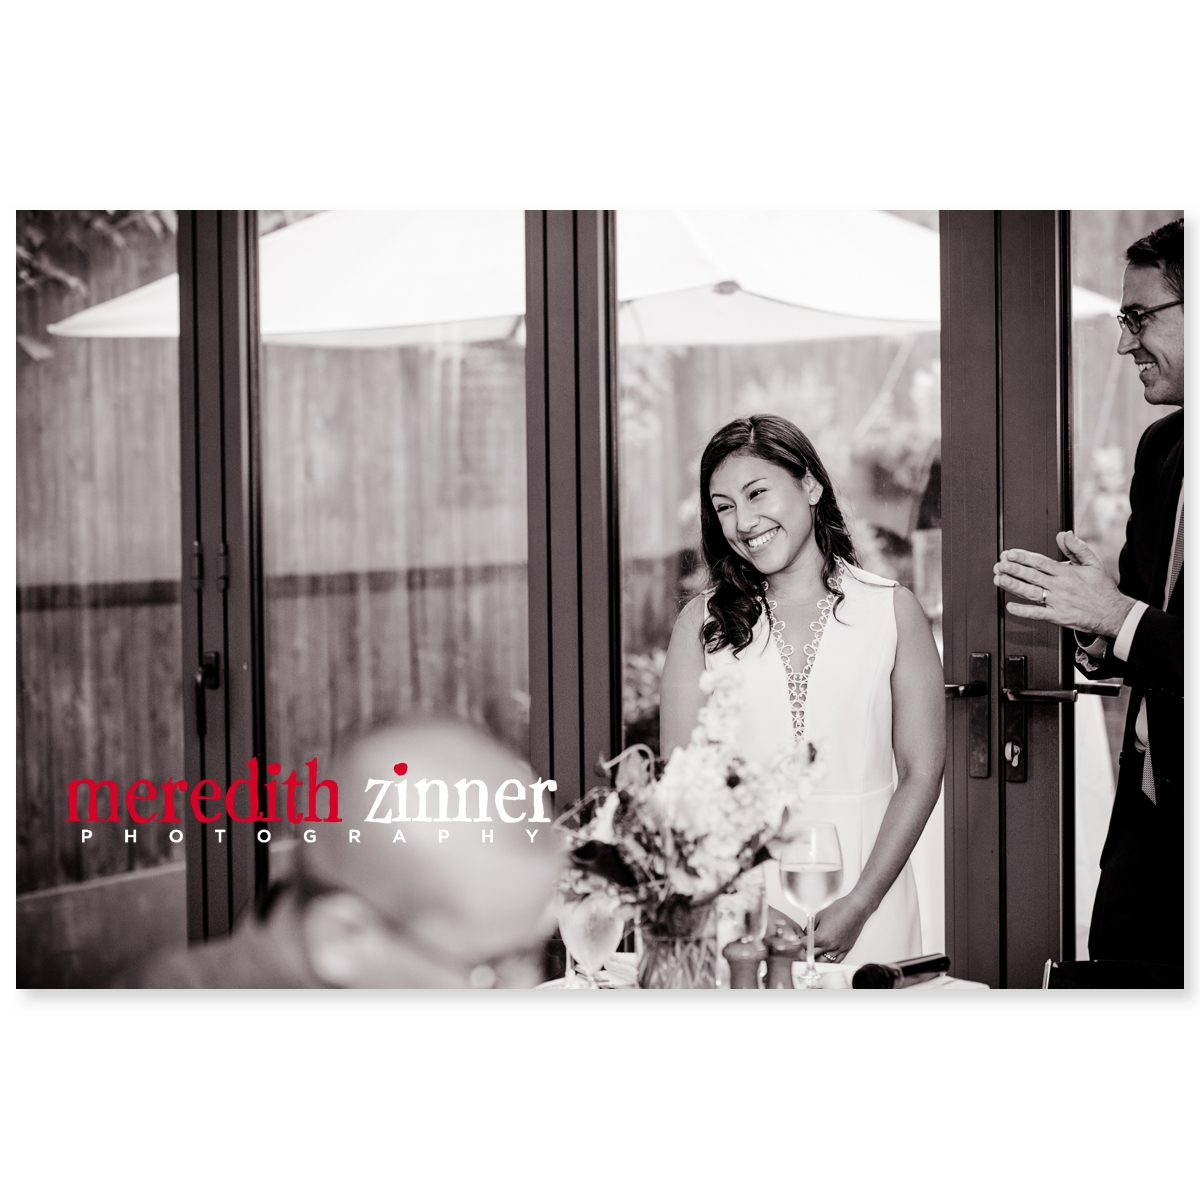 Meredith_Zinner_Photography_StilesCelebration_0168